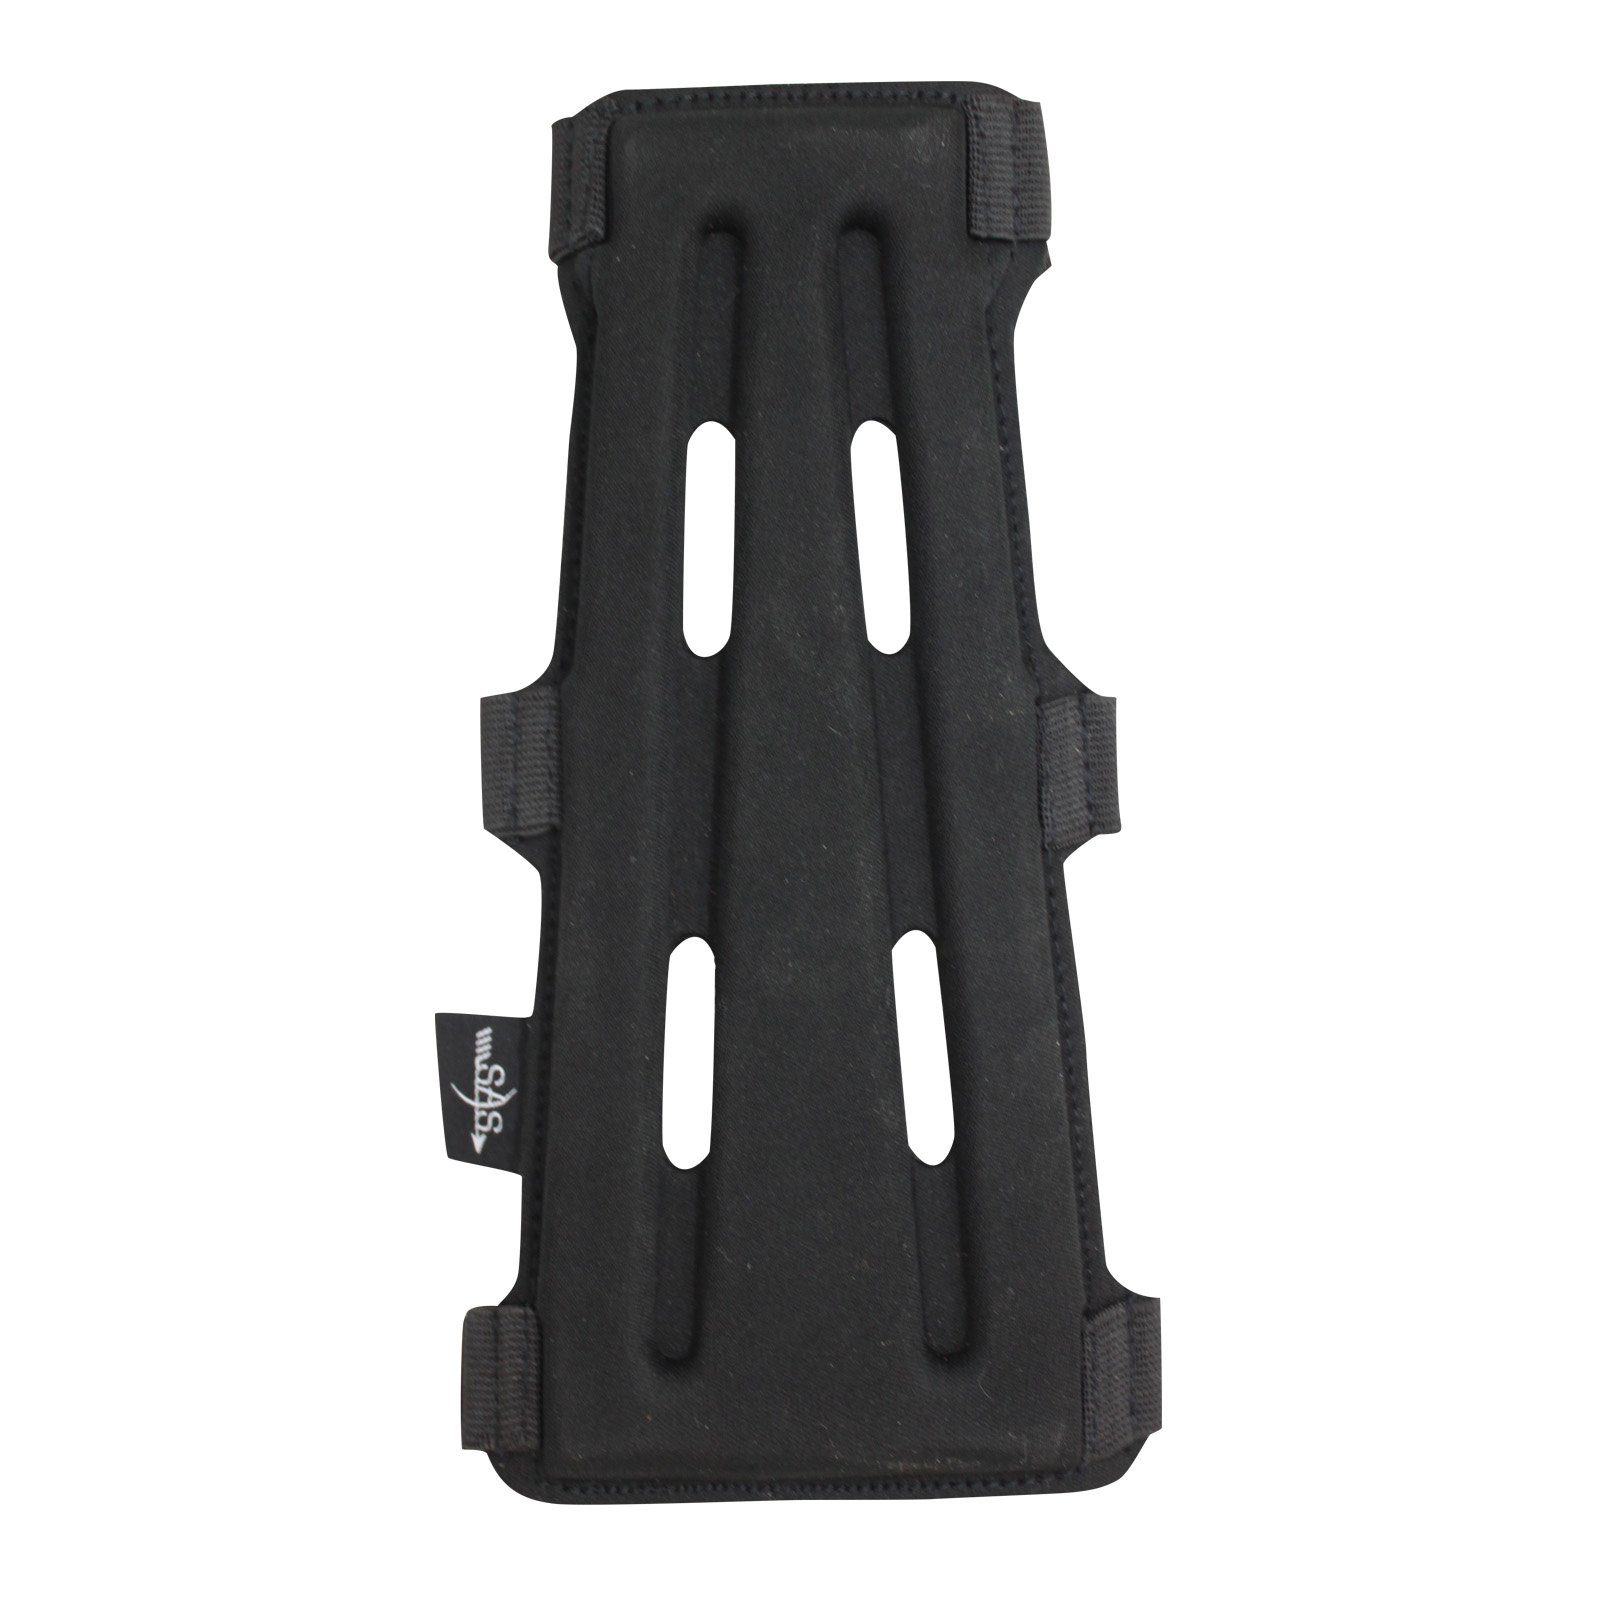 Southland Archery Supply 8'' Black Armguard Archery Bow Range with 3-Strap Buckles by Southland Archery Supply